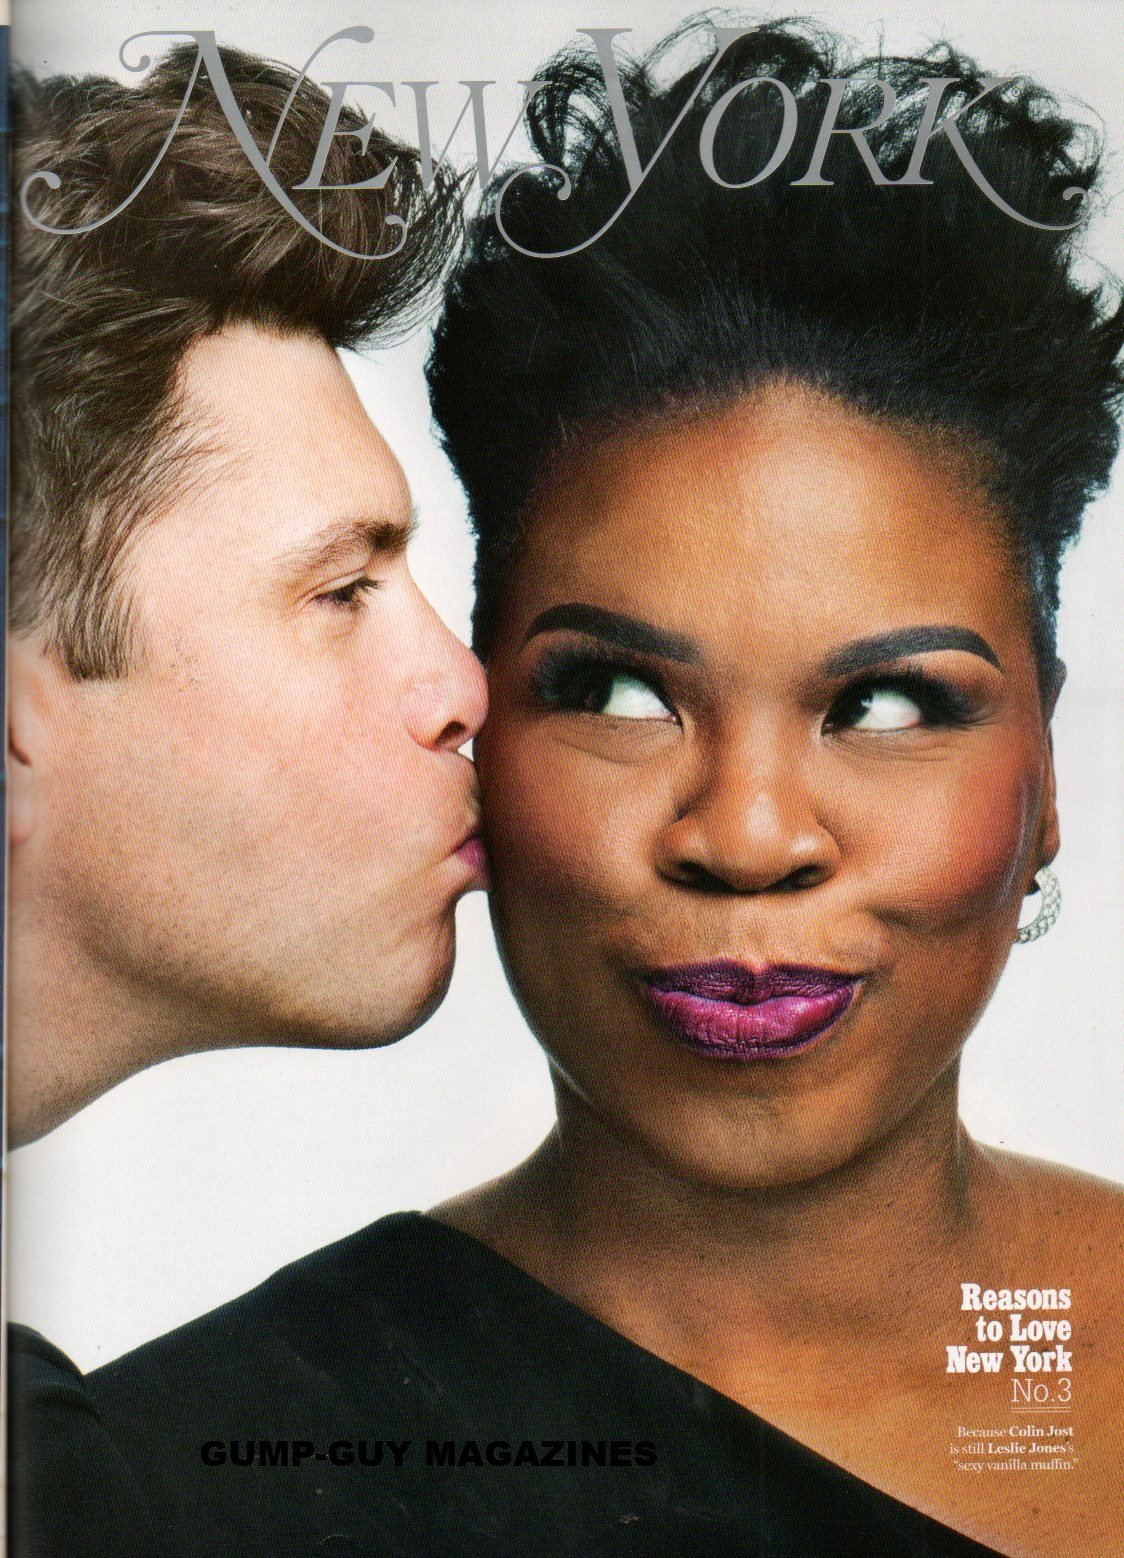 Colin Jost Is Still Leslie Jones Sexy Vanilla Muffin In New York Magazine 2017 David Hallberg Will Be Romeo To Isabella Boylston S Juliet Nyu Student Favors Monochrome Wendy Goodman Adam Moss Amazon Com Books